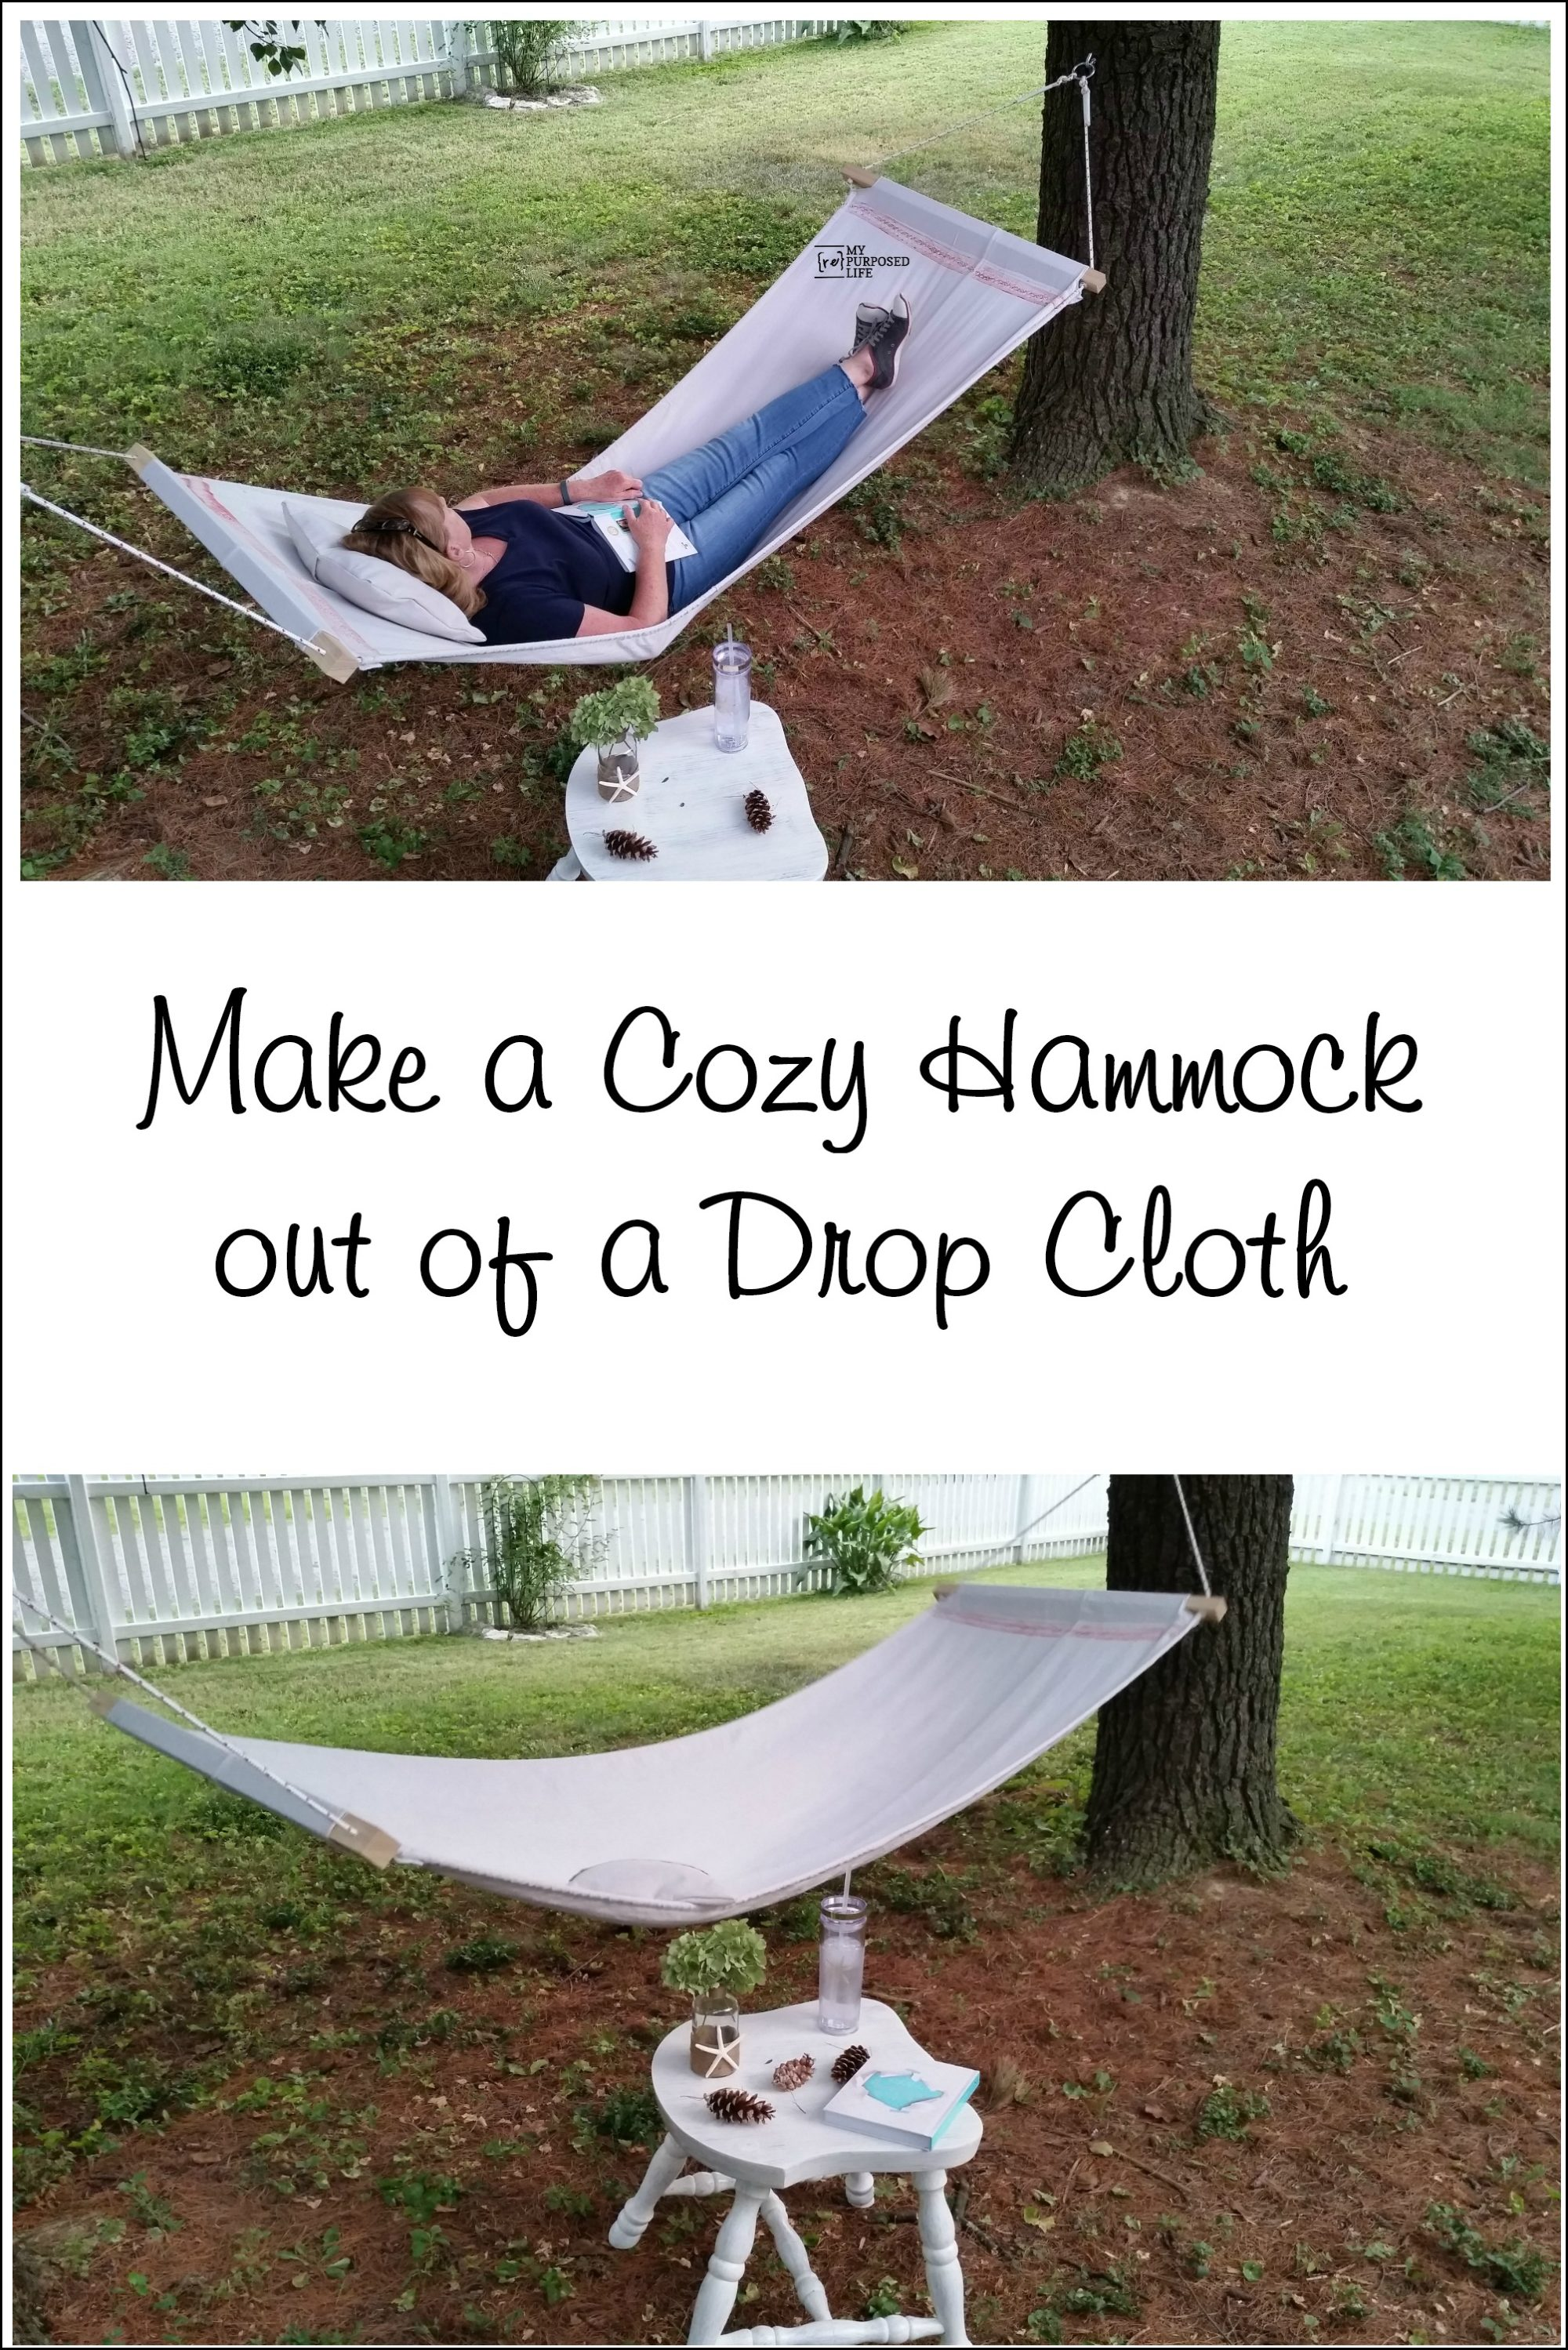 How to make a drop cloth hammock. This single hammock is an easy diy weekend project. If you own a sewing machine, you can make this hammock today. #myrepurposedlife #repurposed #dropcloth #project #diy #hammock via @repurposedlife